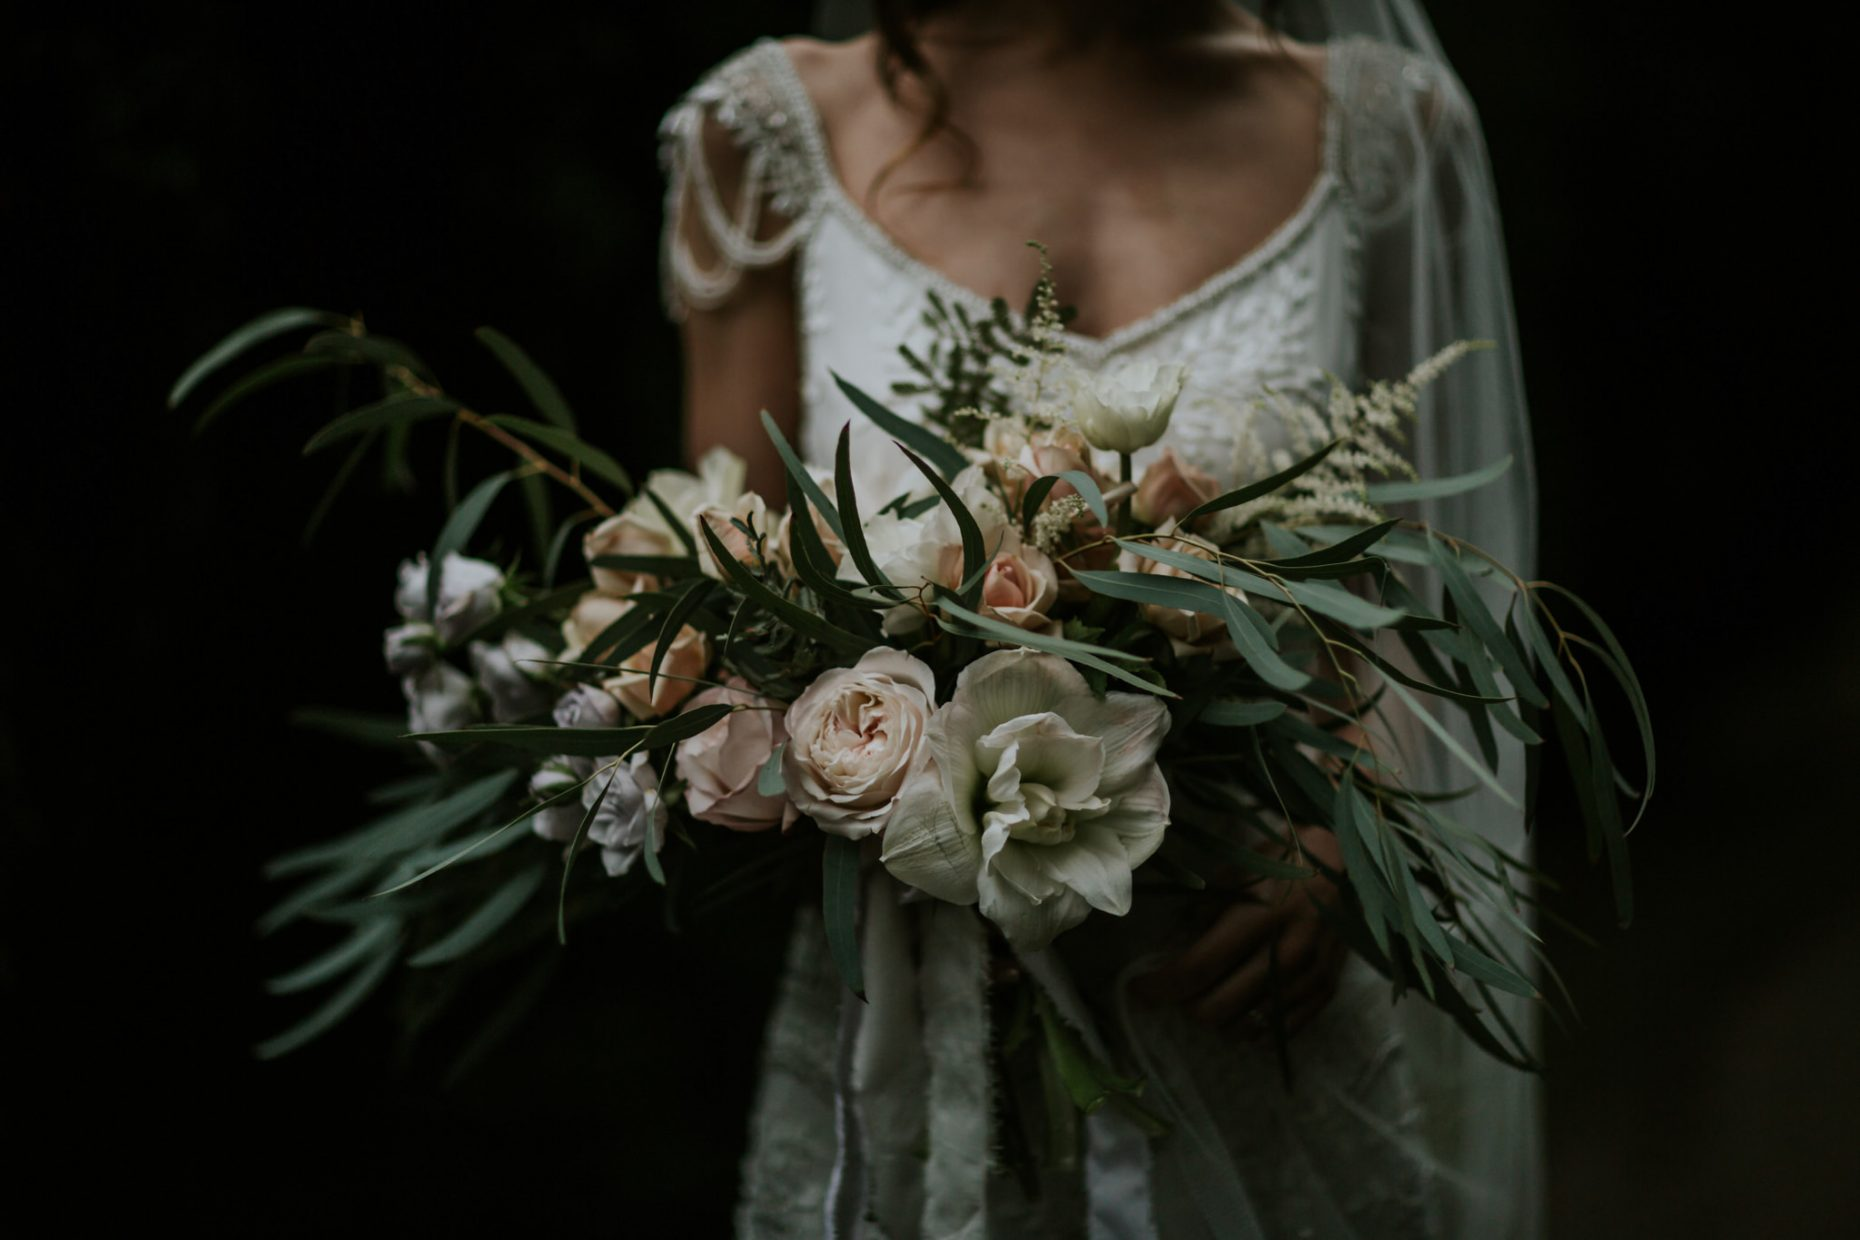 A close up shot of a bride against a dark background holding a huge bouquet of flowers